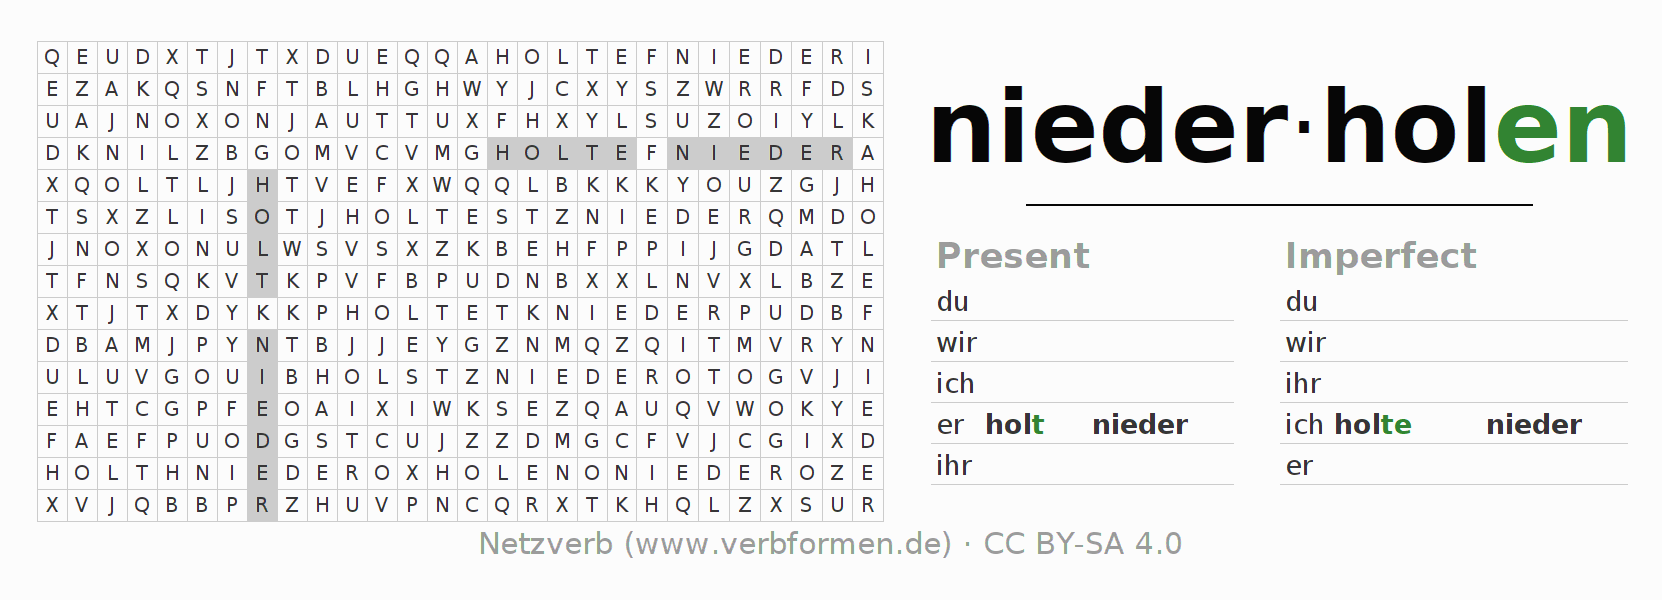 Word search puzzle for the conjugation of the verb niederholen